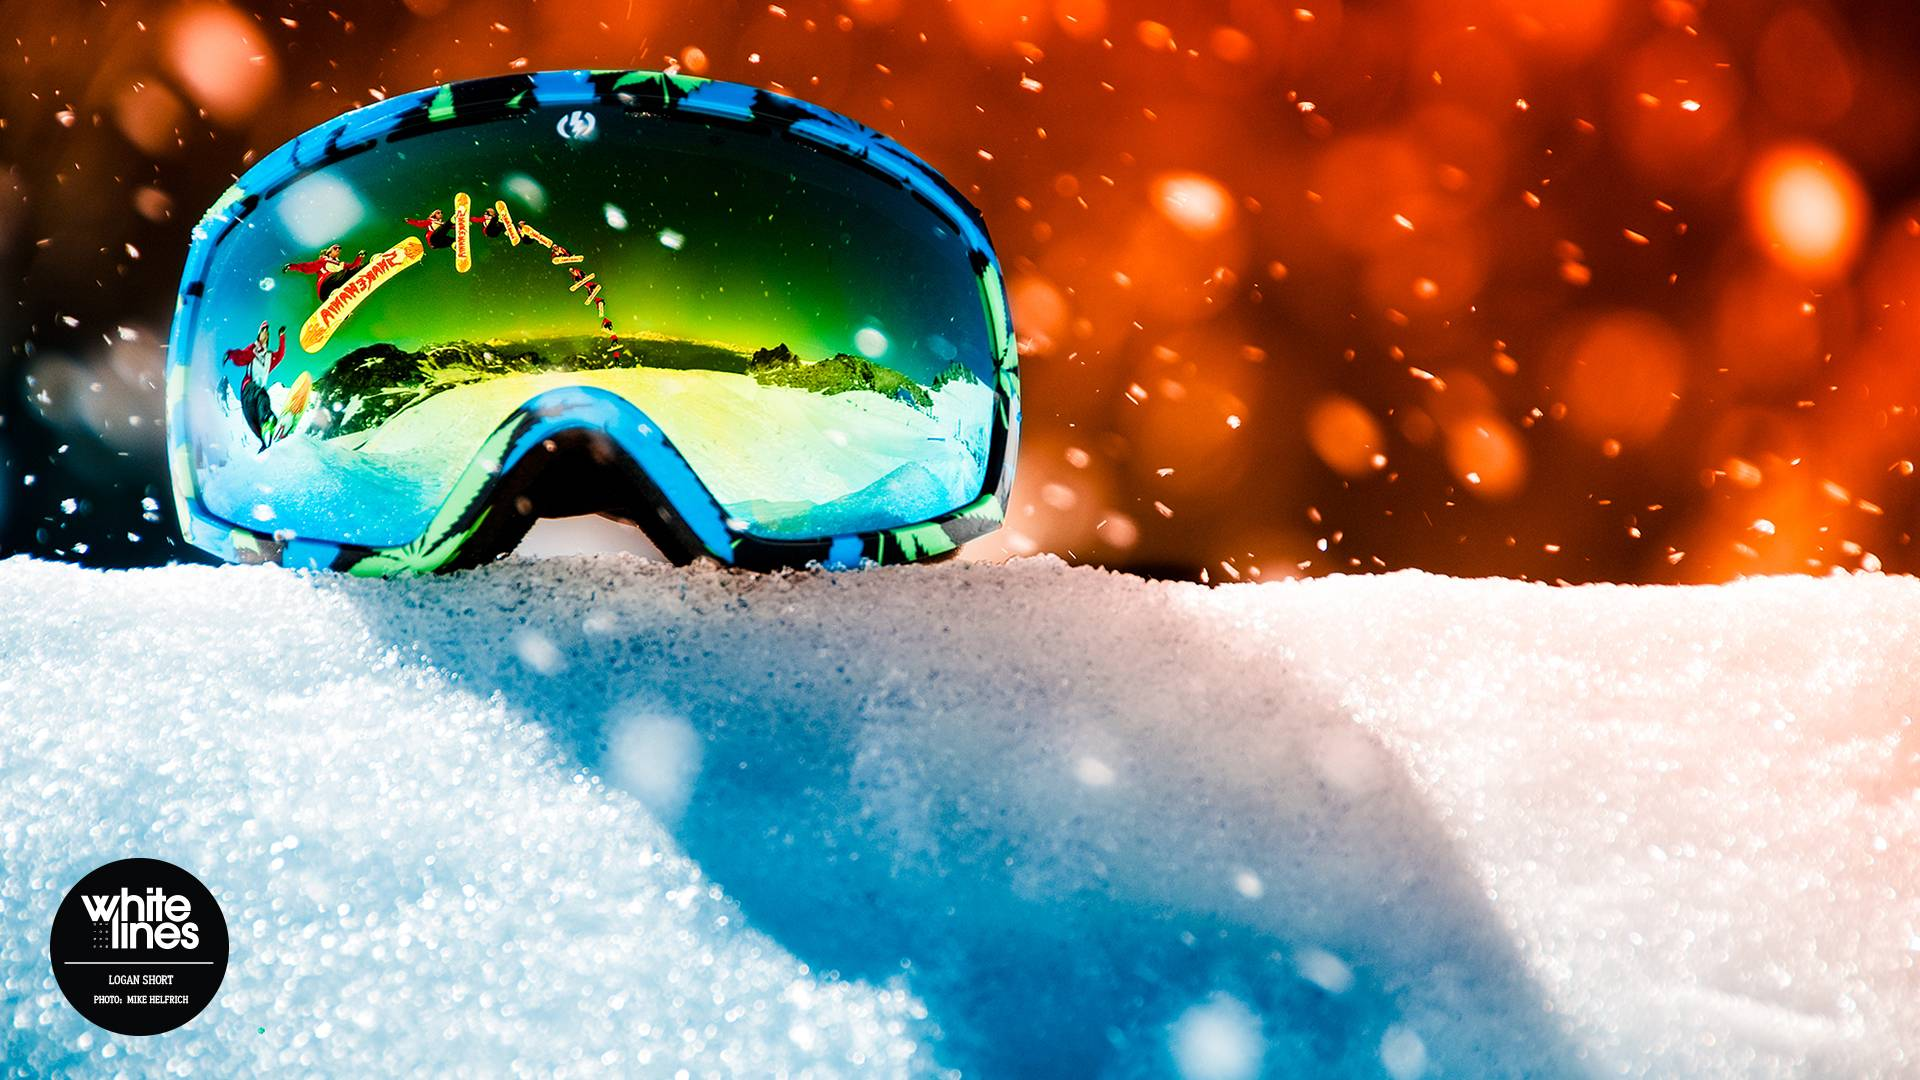 1920x1080 - Snowboarding Wallpapers 32